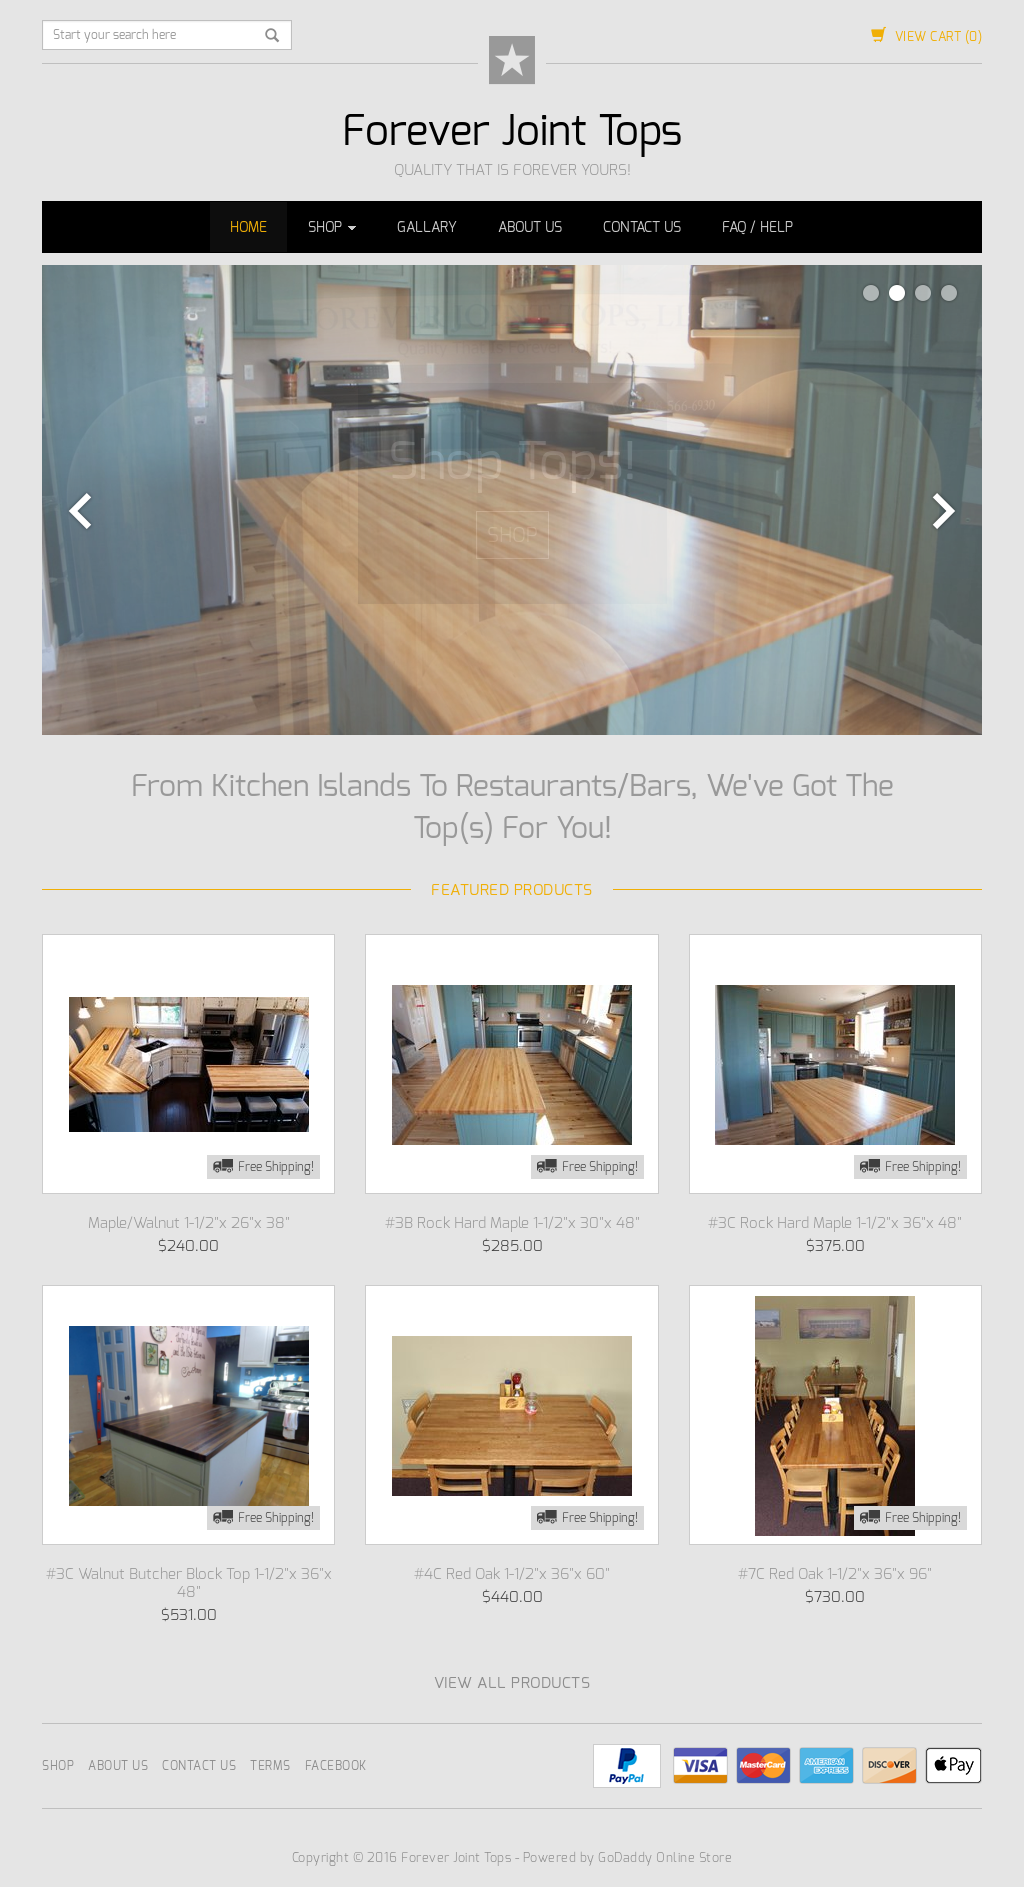 Forever Joint Butcher Block Tops Competitors, Revenue and